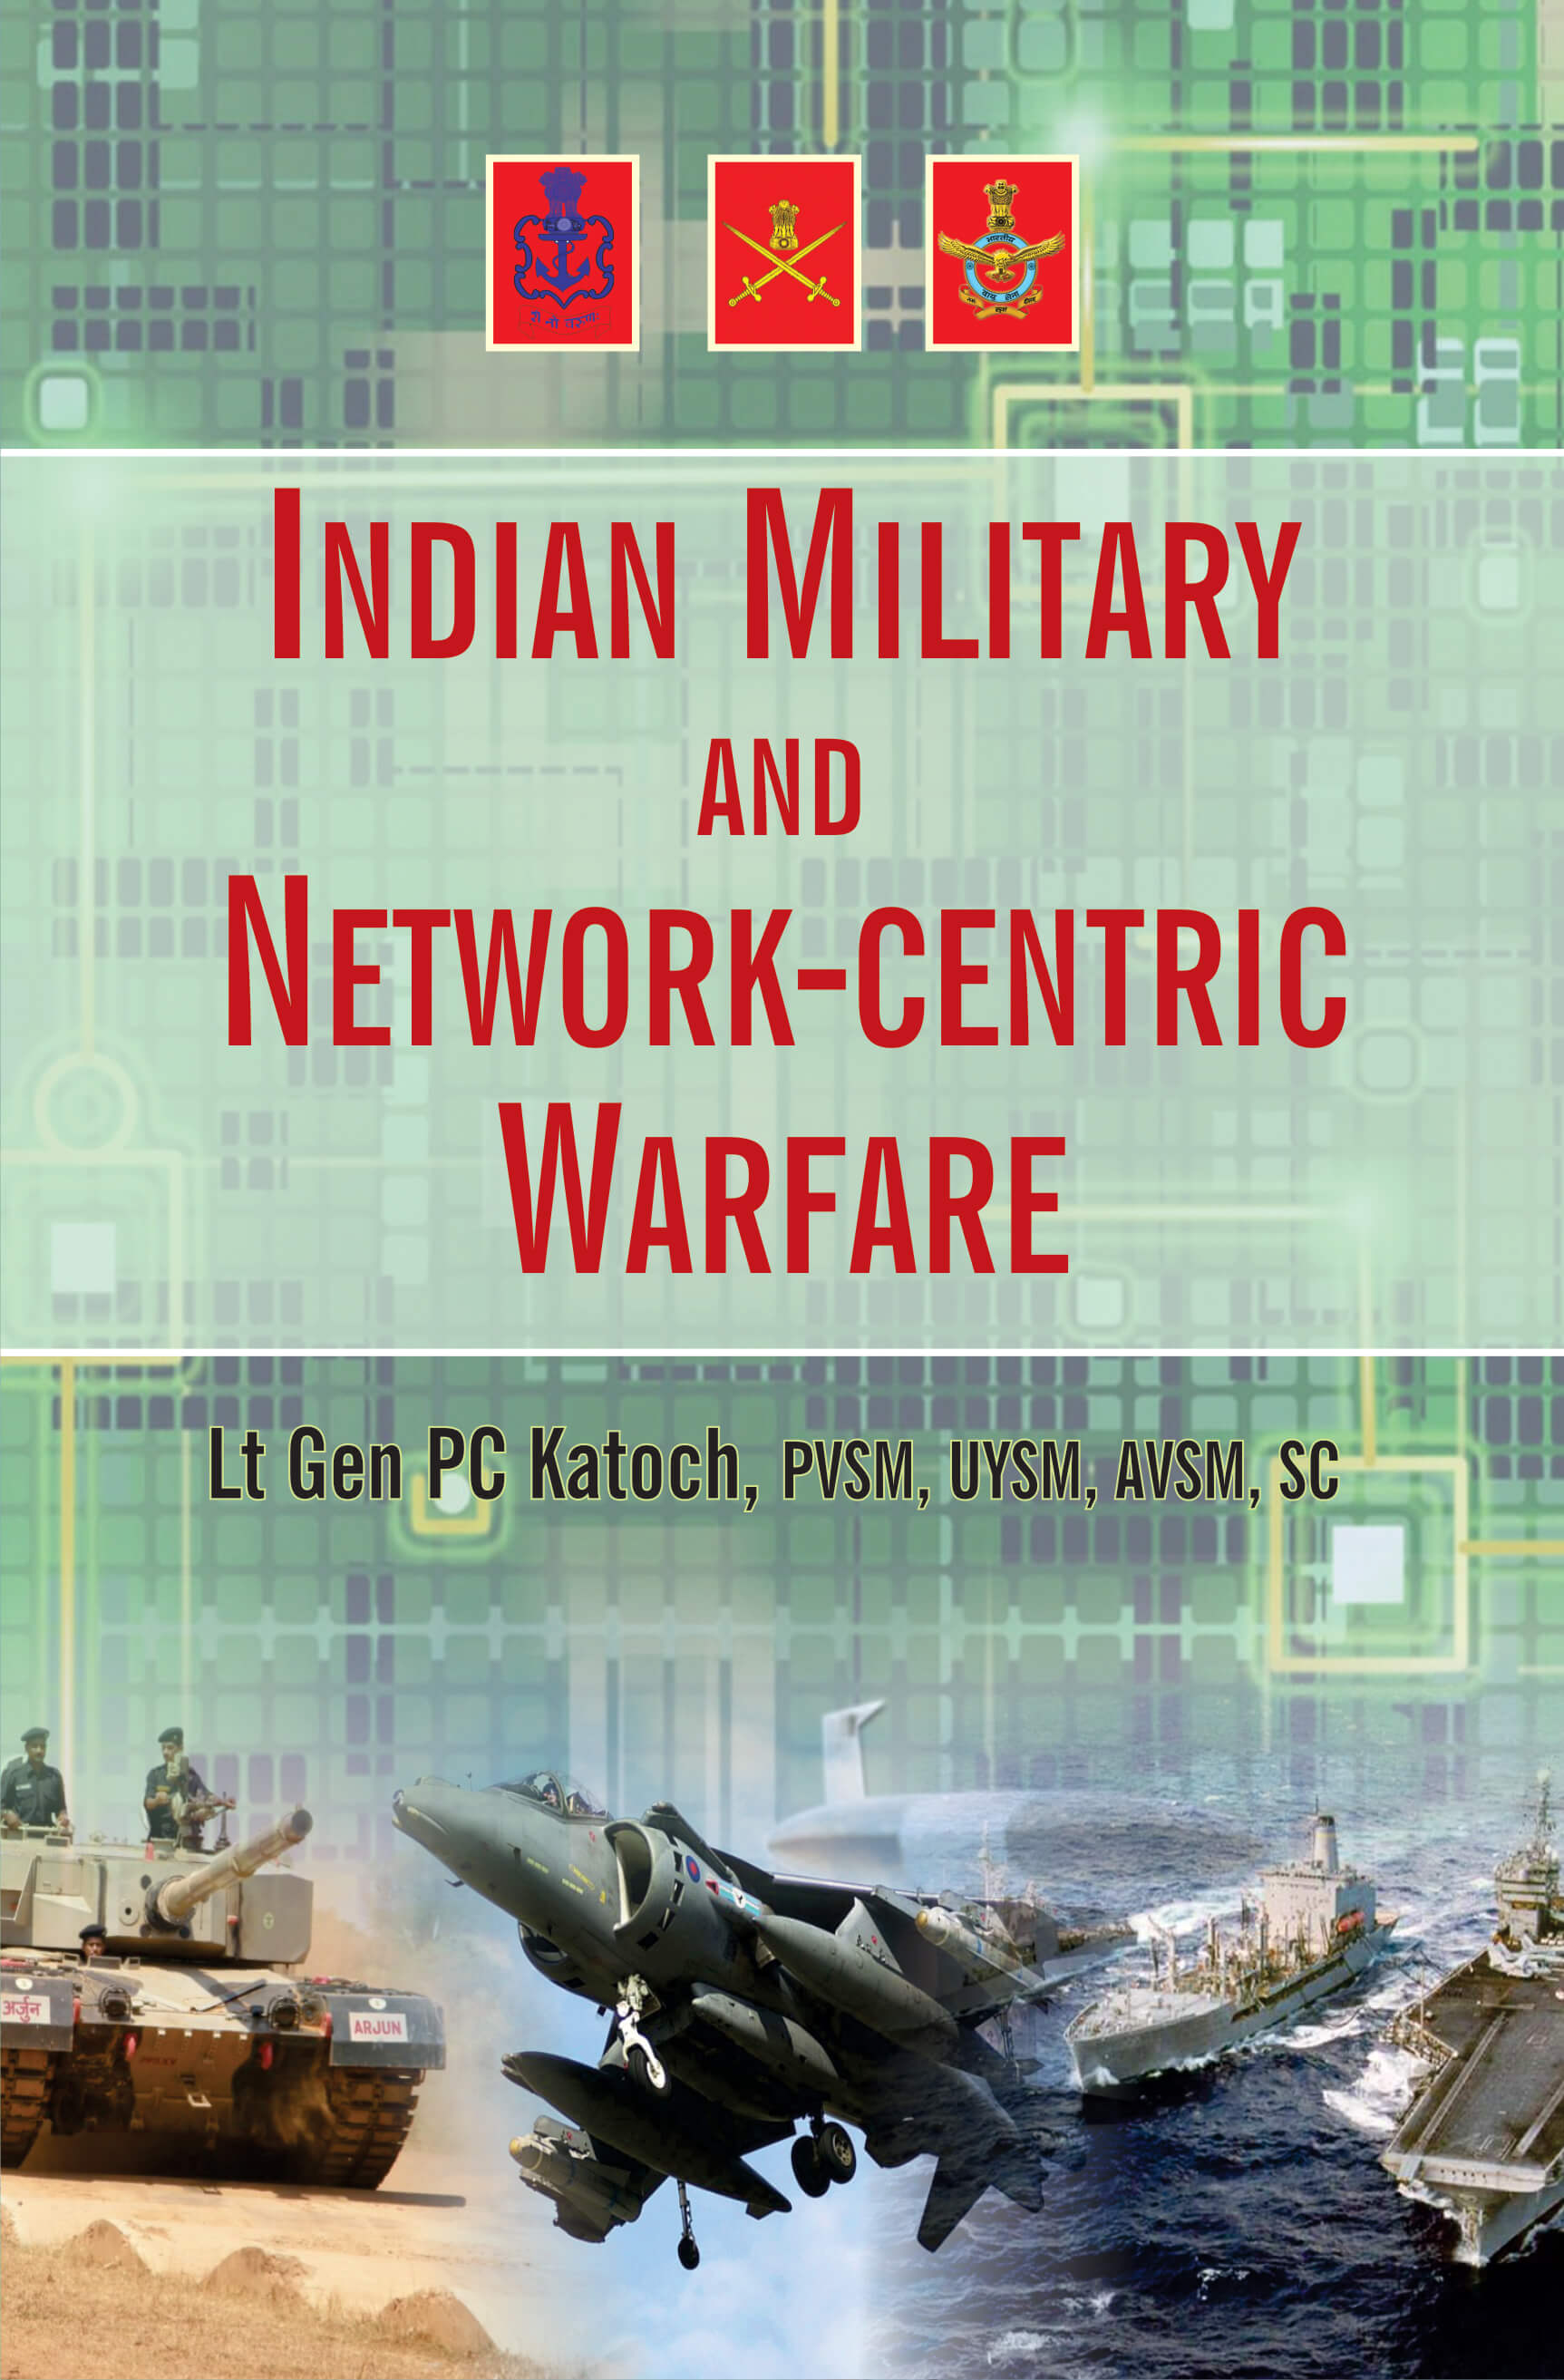 Indian Military And Network-Centric Warfare